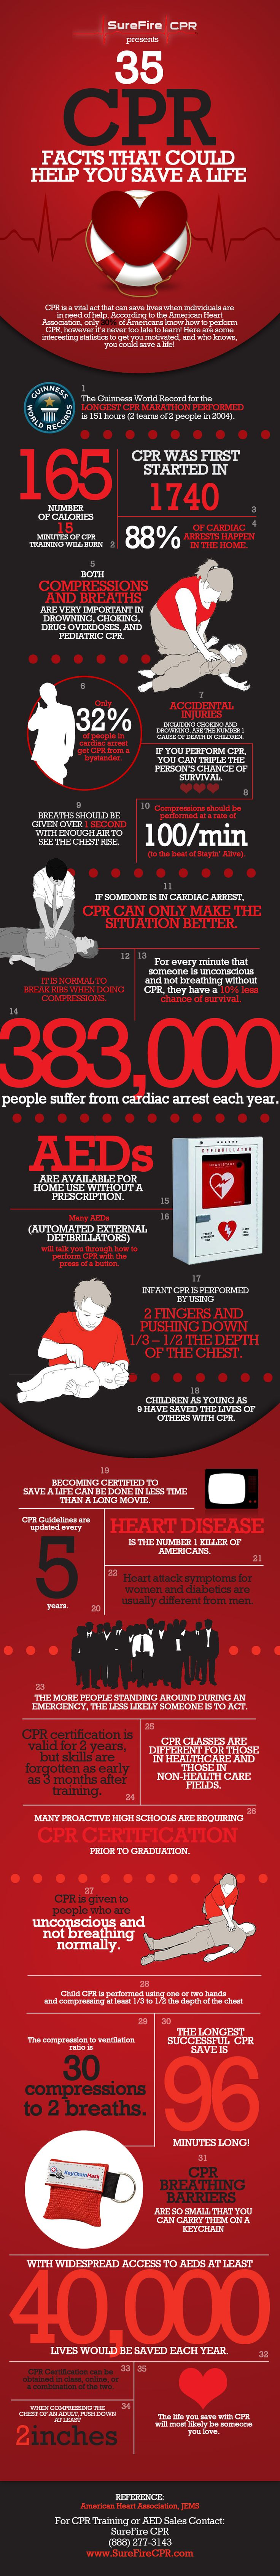 Looking for some CPR Facts that could